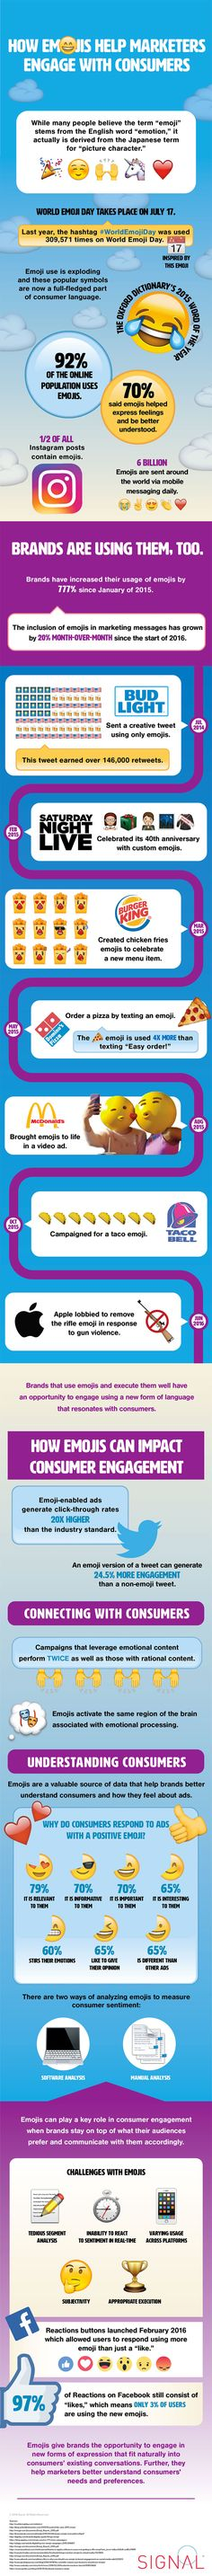 For World Emoji Day: How Emojis Help You Connect with Consumers (Infographic)    According to a recent study, 92 percent of the online population uses emojis.